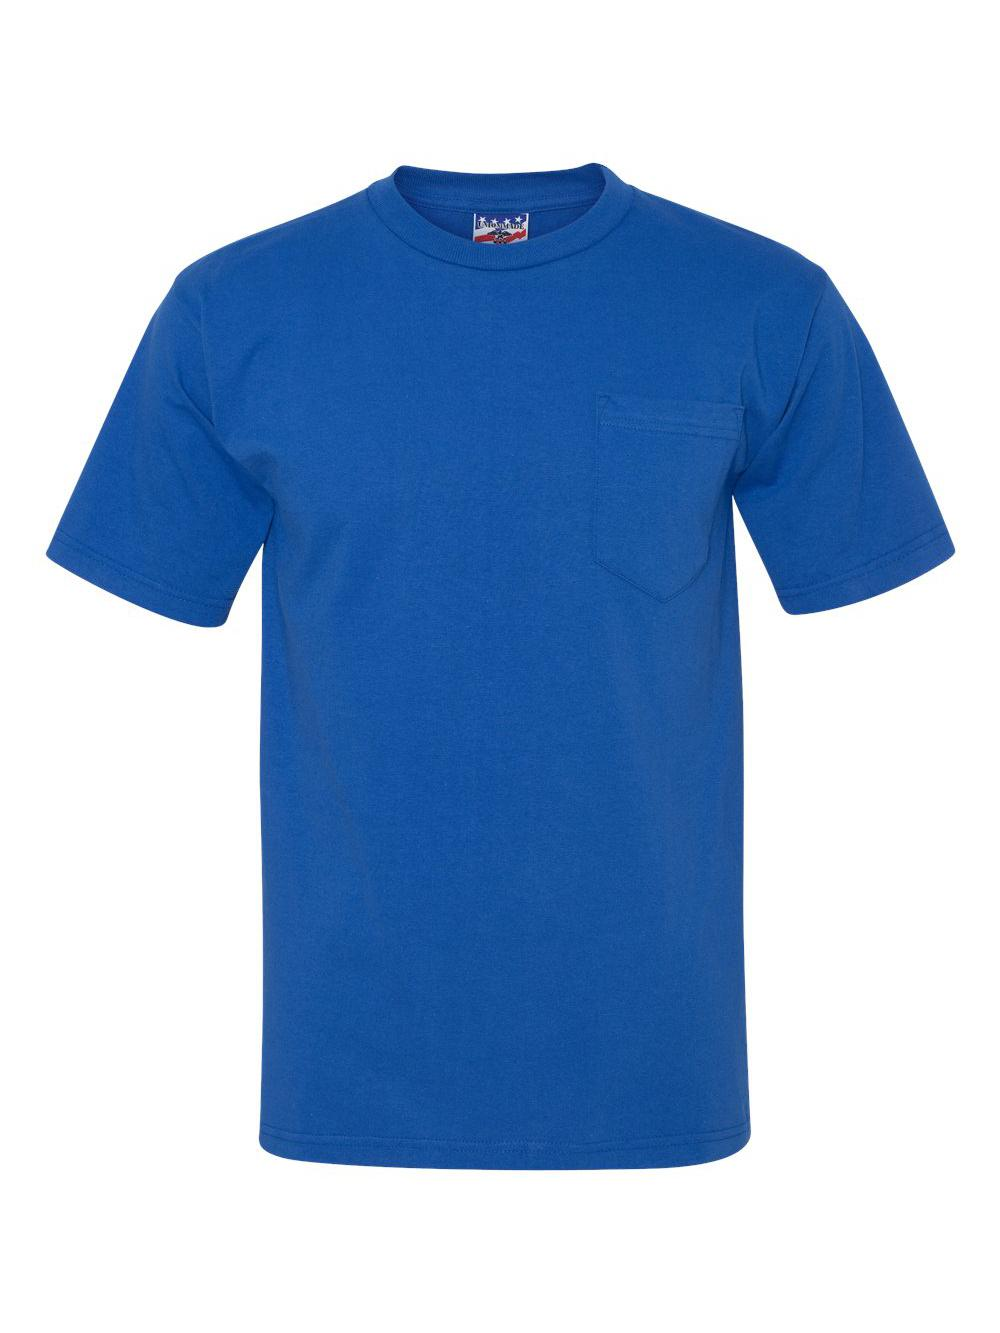 Bayside-Union-Made-Short-Sleeve-T-Shirt-with-a-Pocket-3015 thumbnail 27